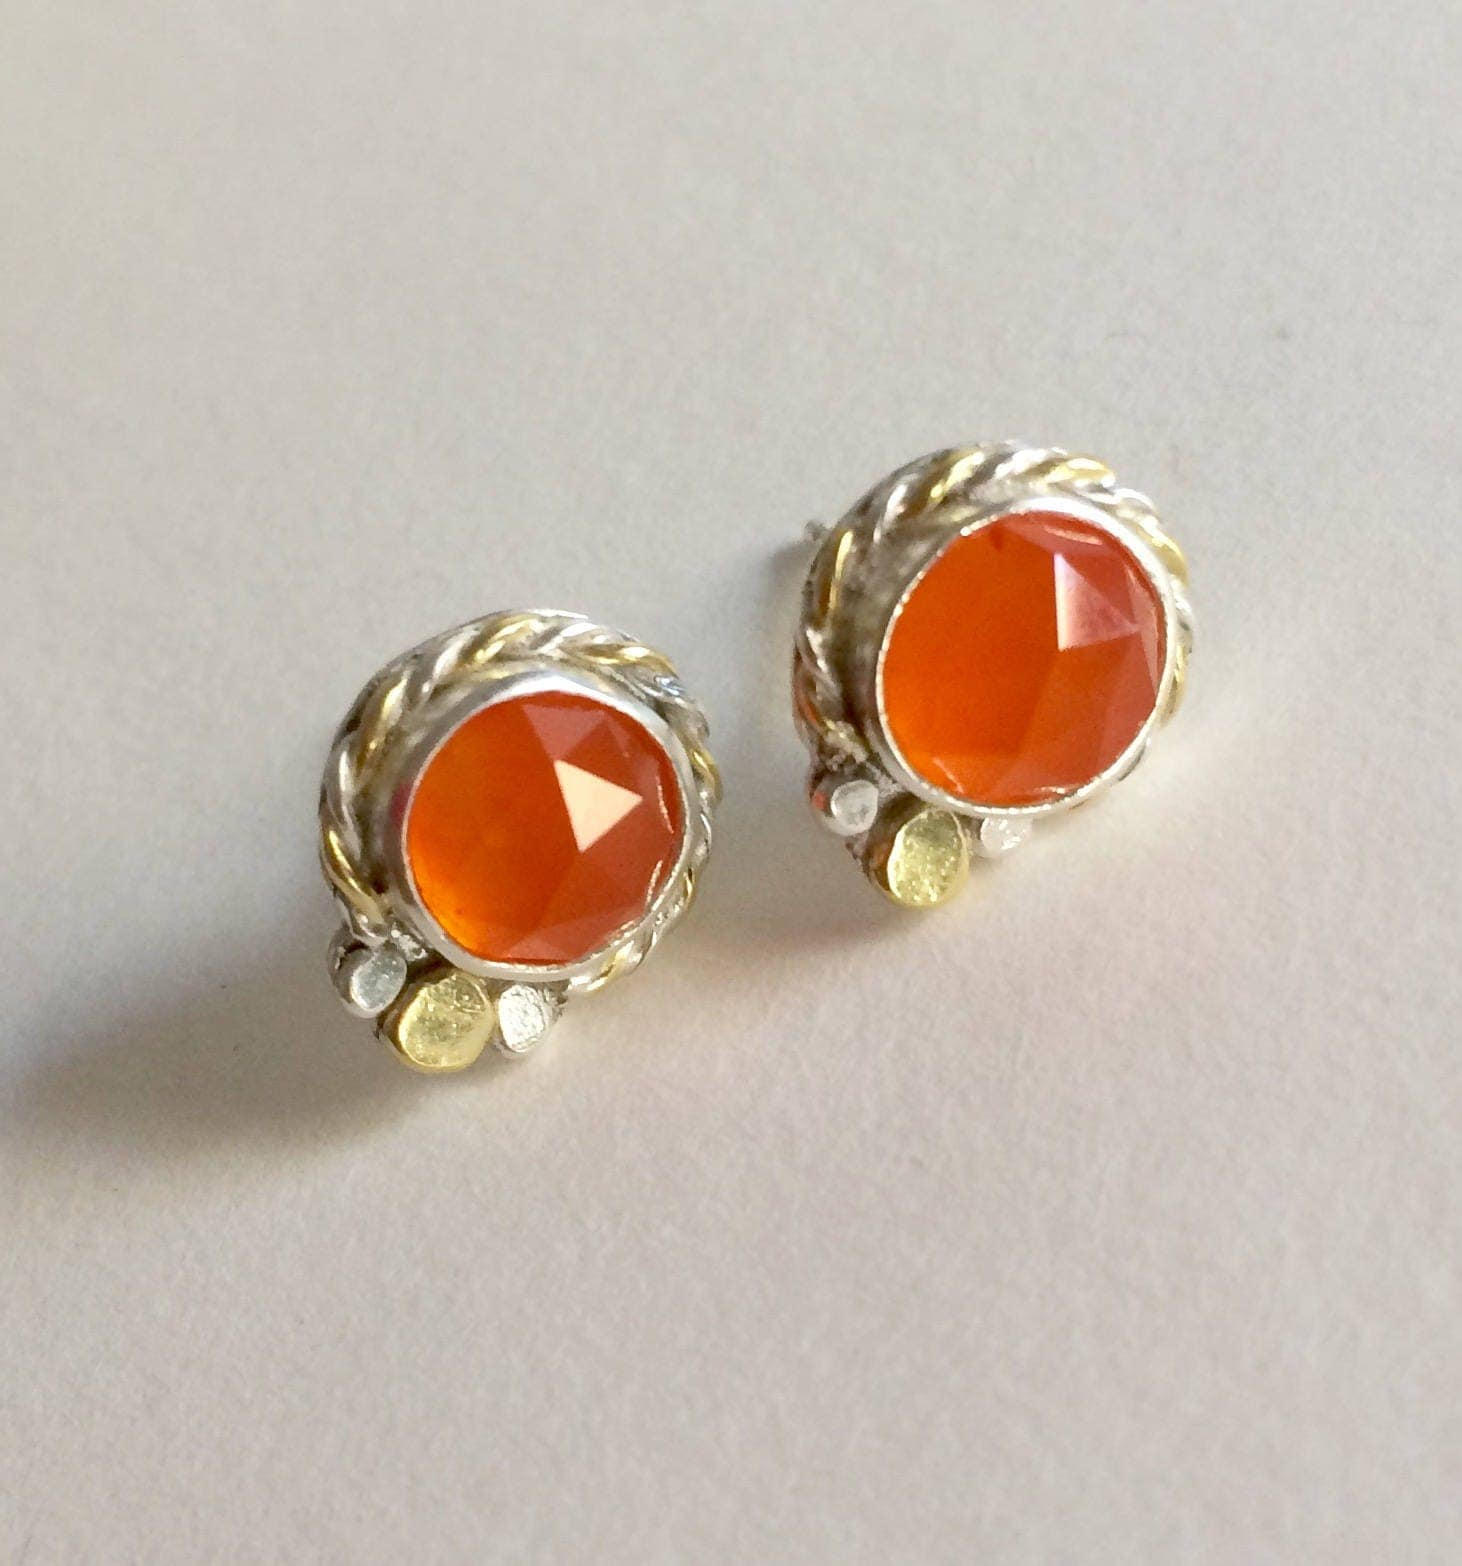 lenses mandorlas shop jewelry online kma earrings and carnelian gold brass